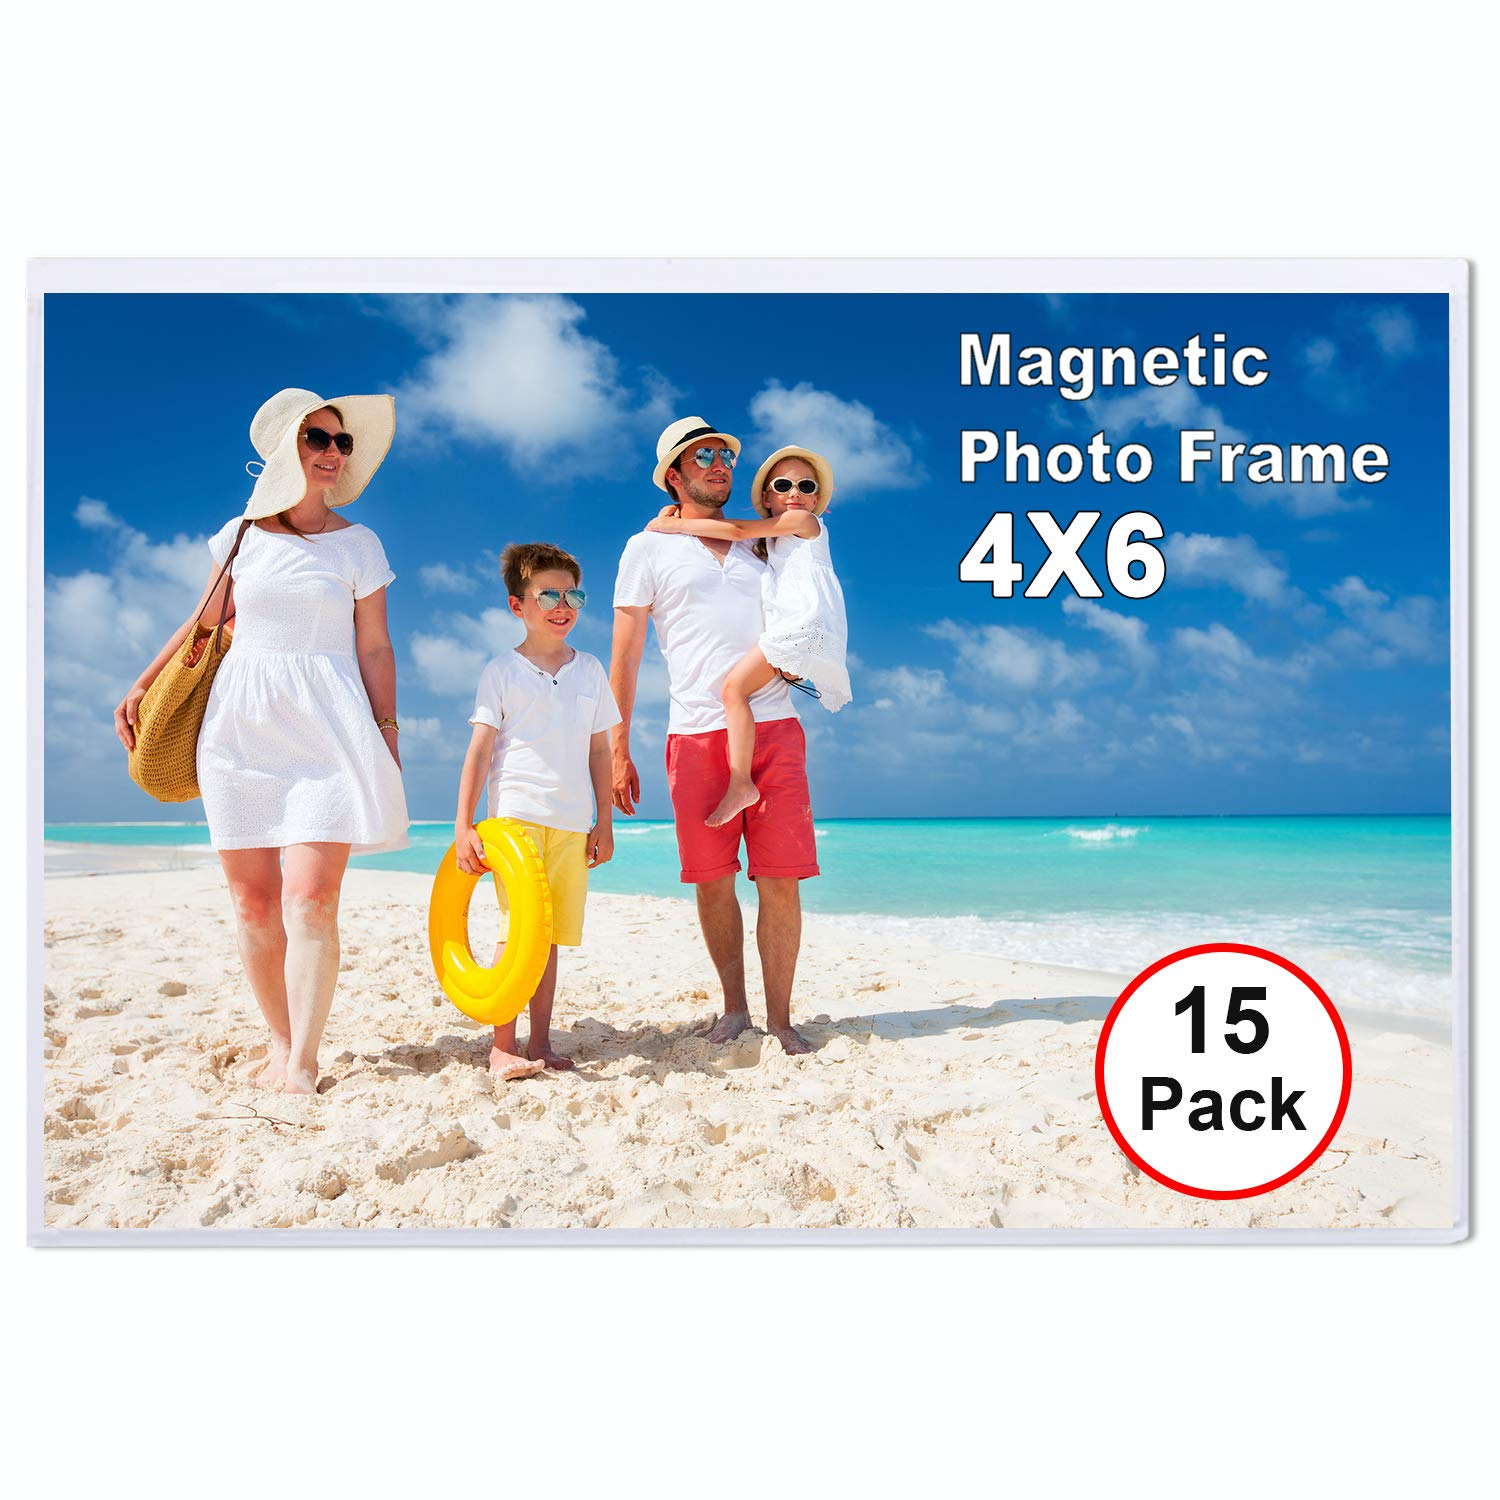 TNELTUEB 15 Pack Magnetic Picture Frames with Photo Pocket, 4 x 6 Magnetic Photo Sleeve Frame for Refrigerator, Fridge, Office Cabinet